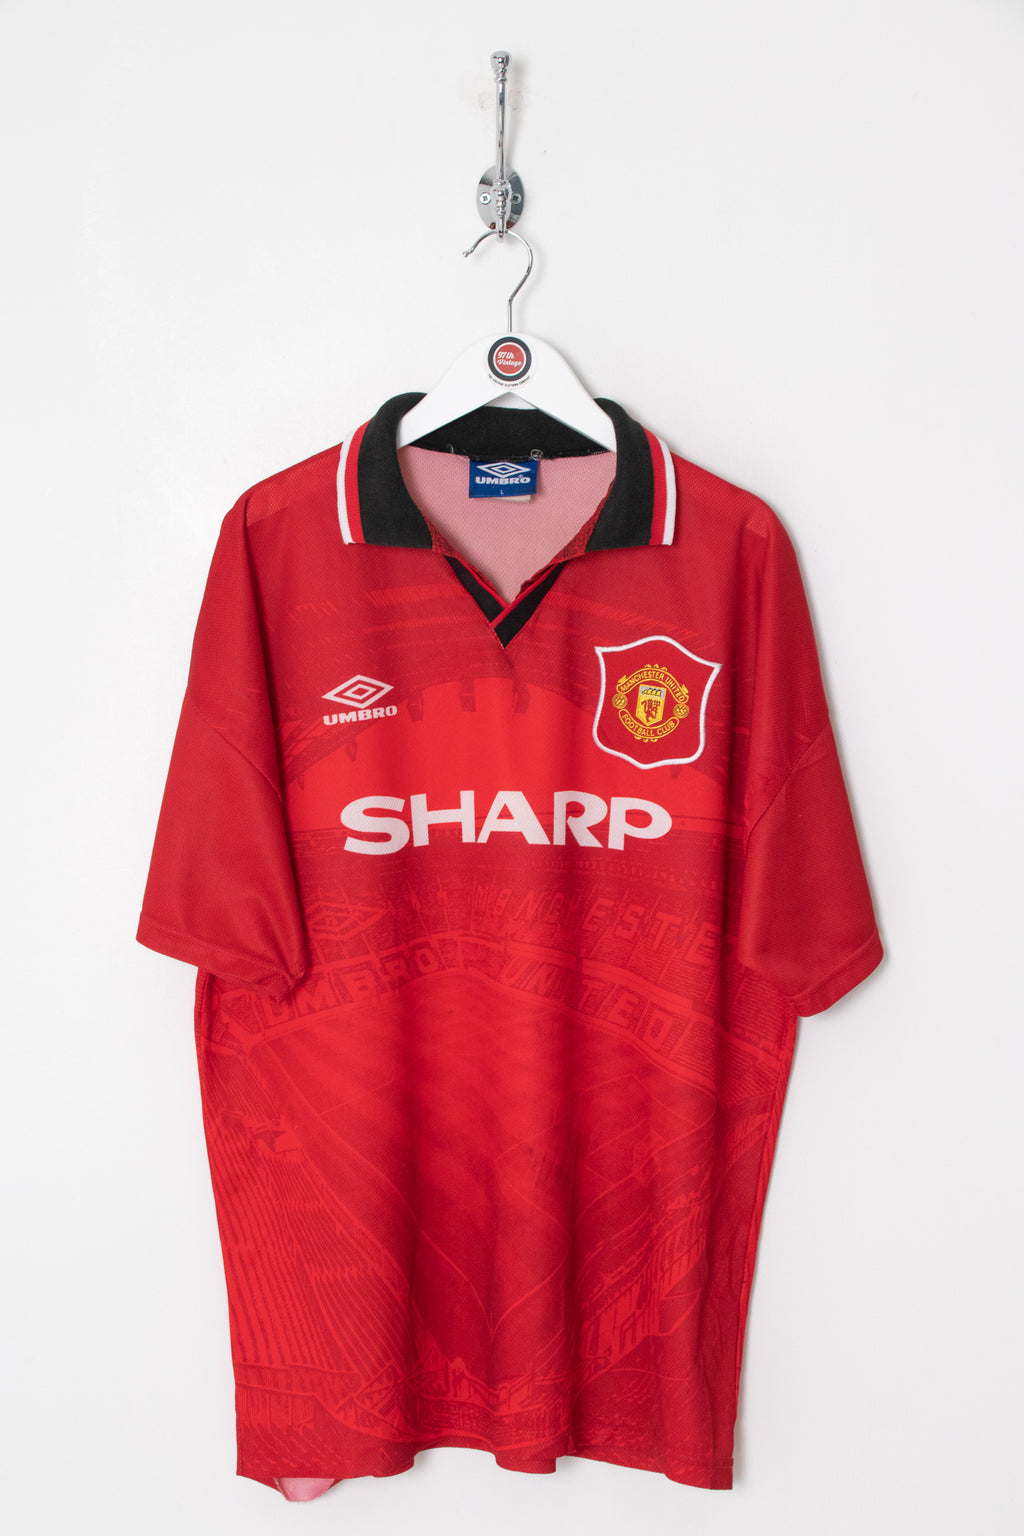 1994 Manchester United Football Shirt (L)